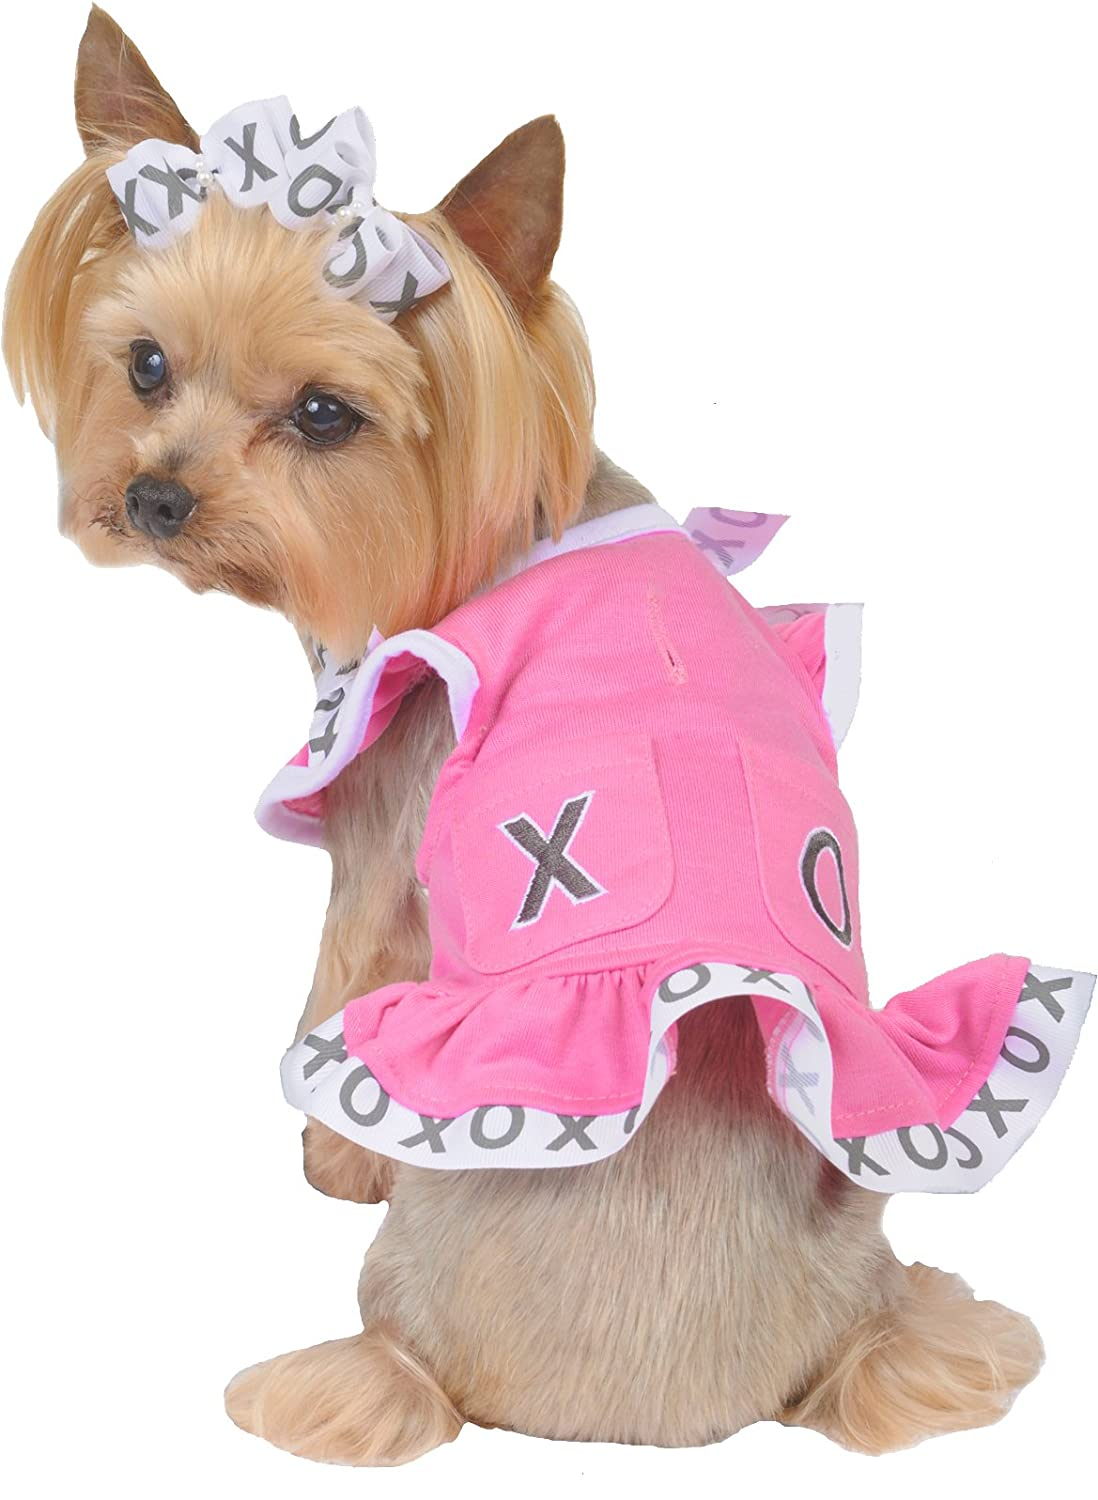 Max's Closet X and O Pocket Dog Dress, X-Small : Amazon.in: Pet Supplies